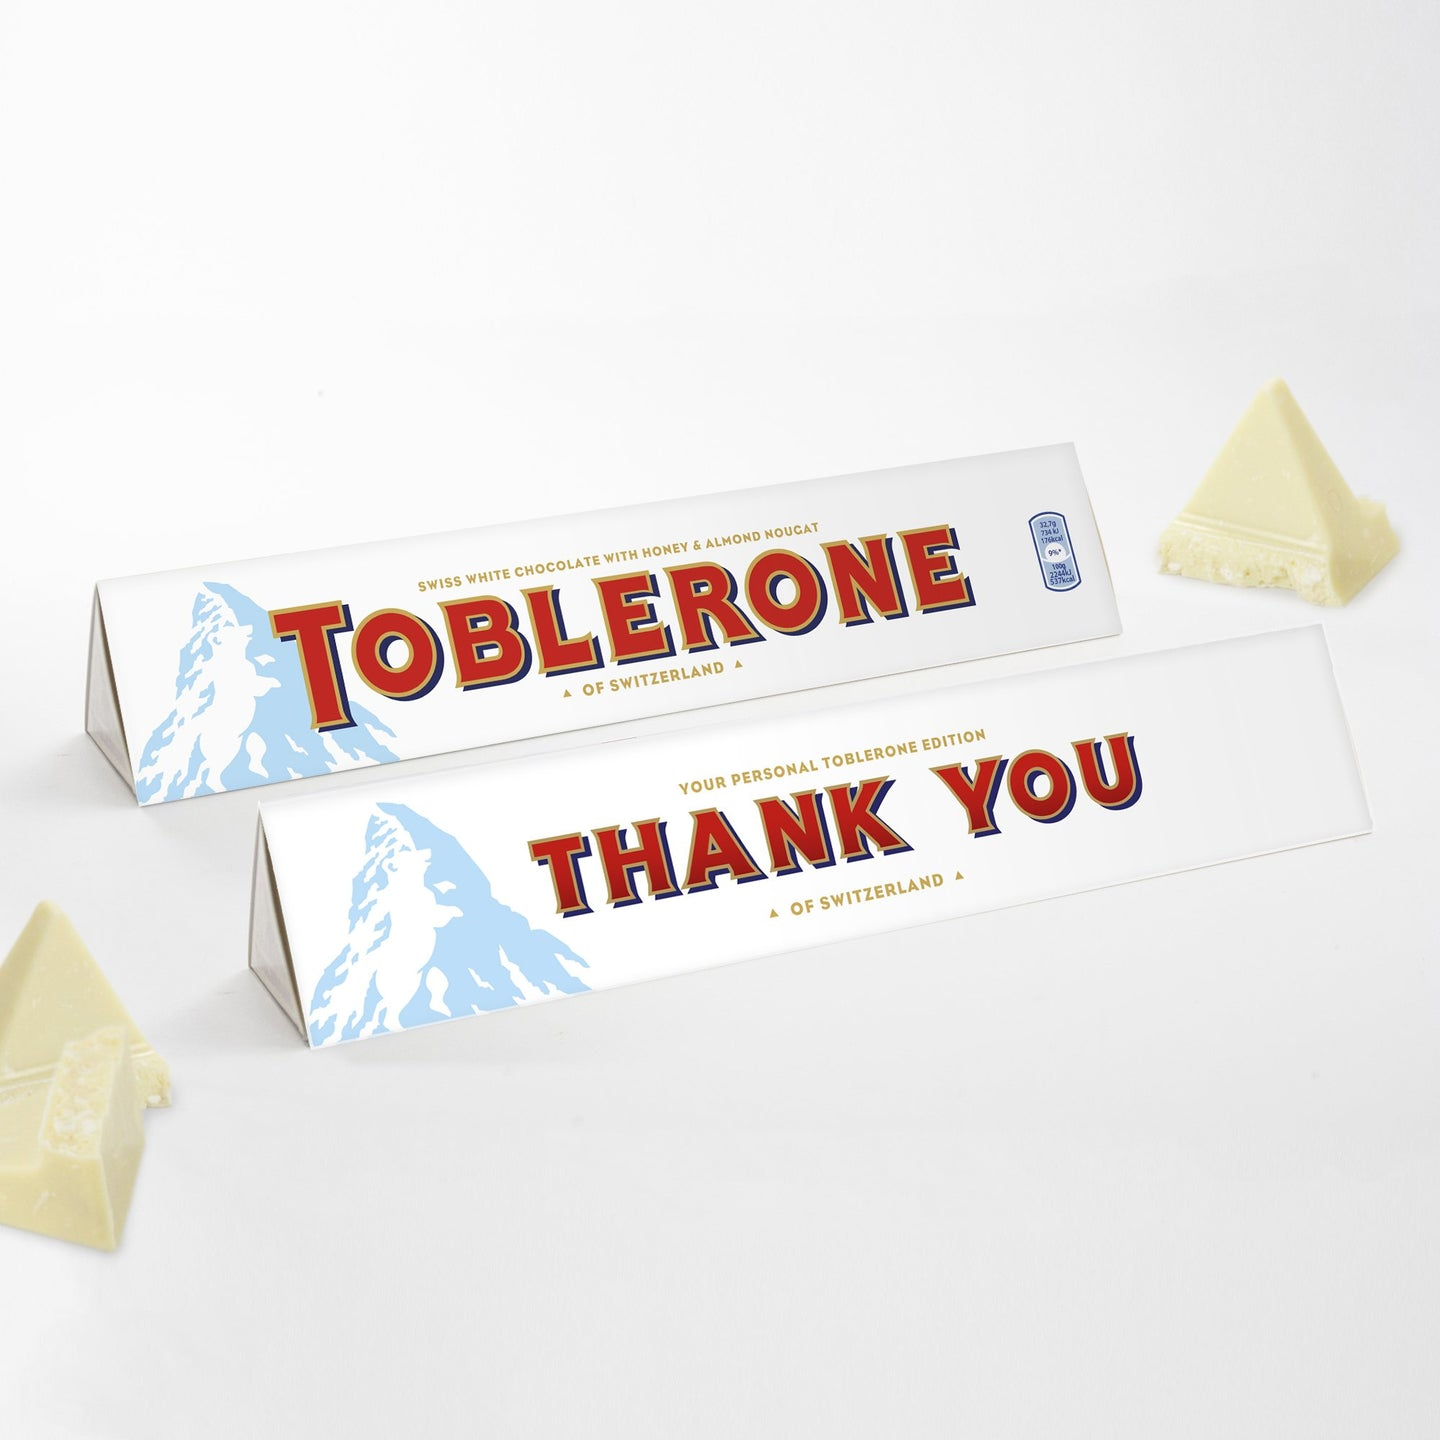 360g White Chocolate Toblerone with 'Thank You' Sleeve